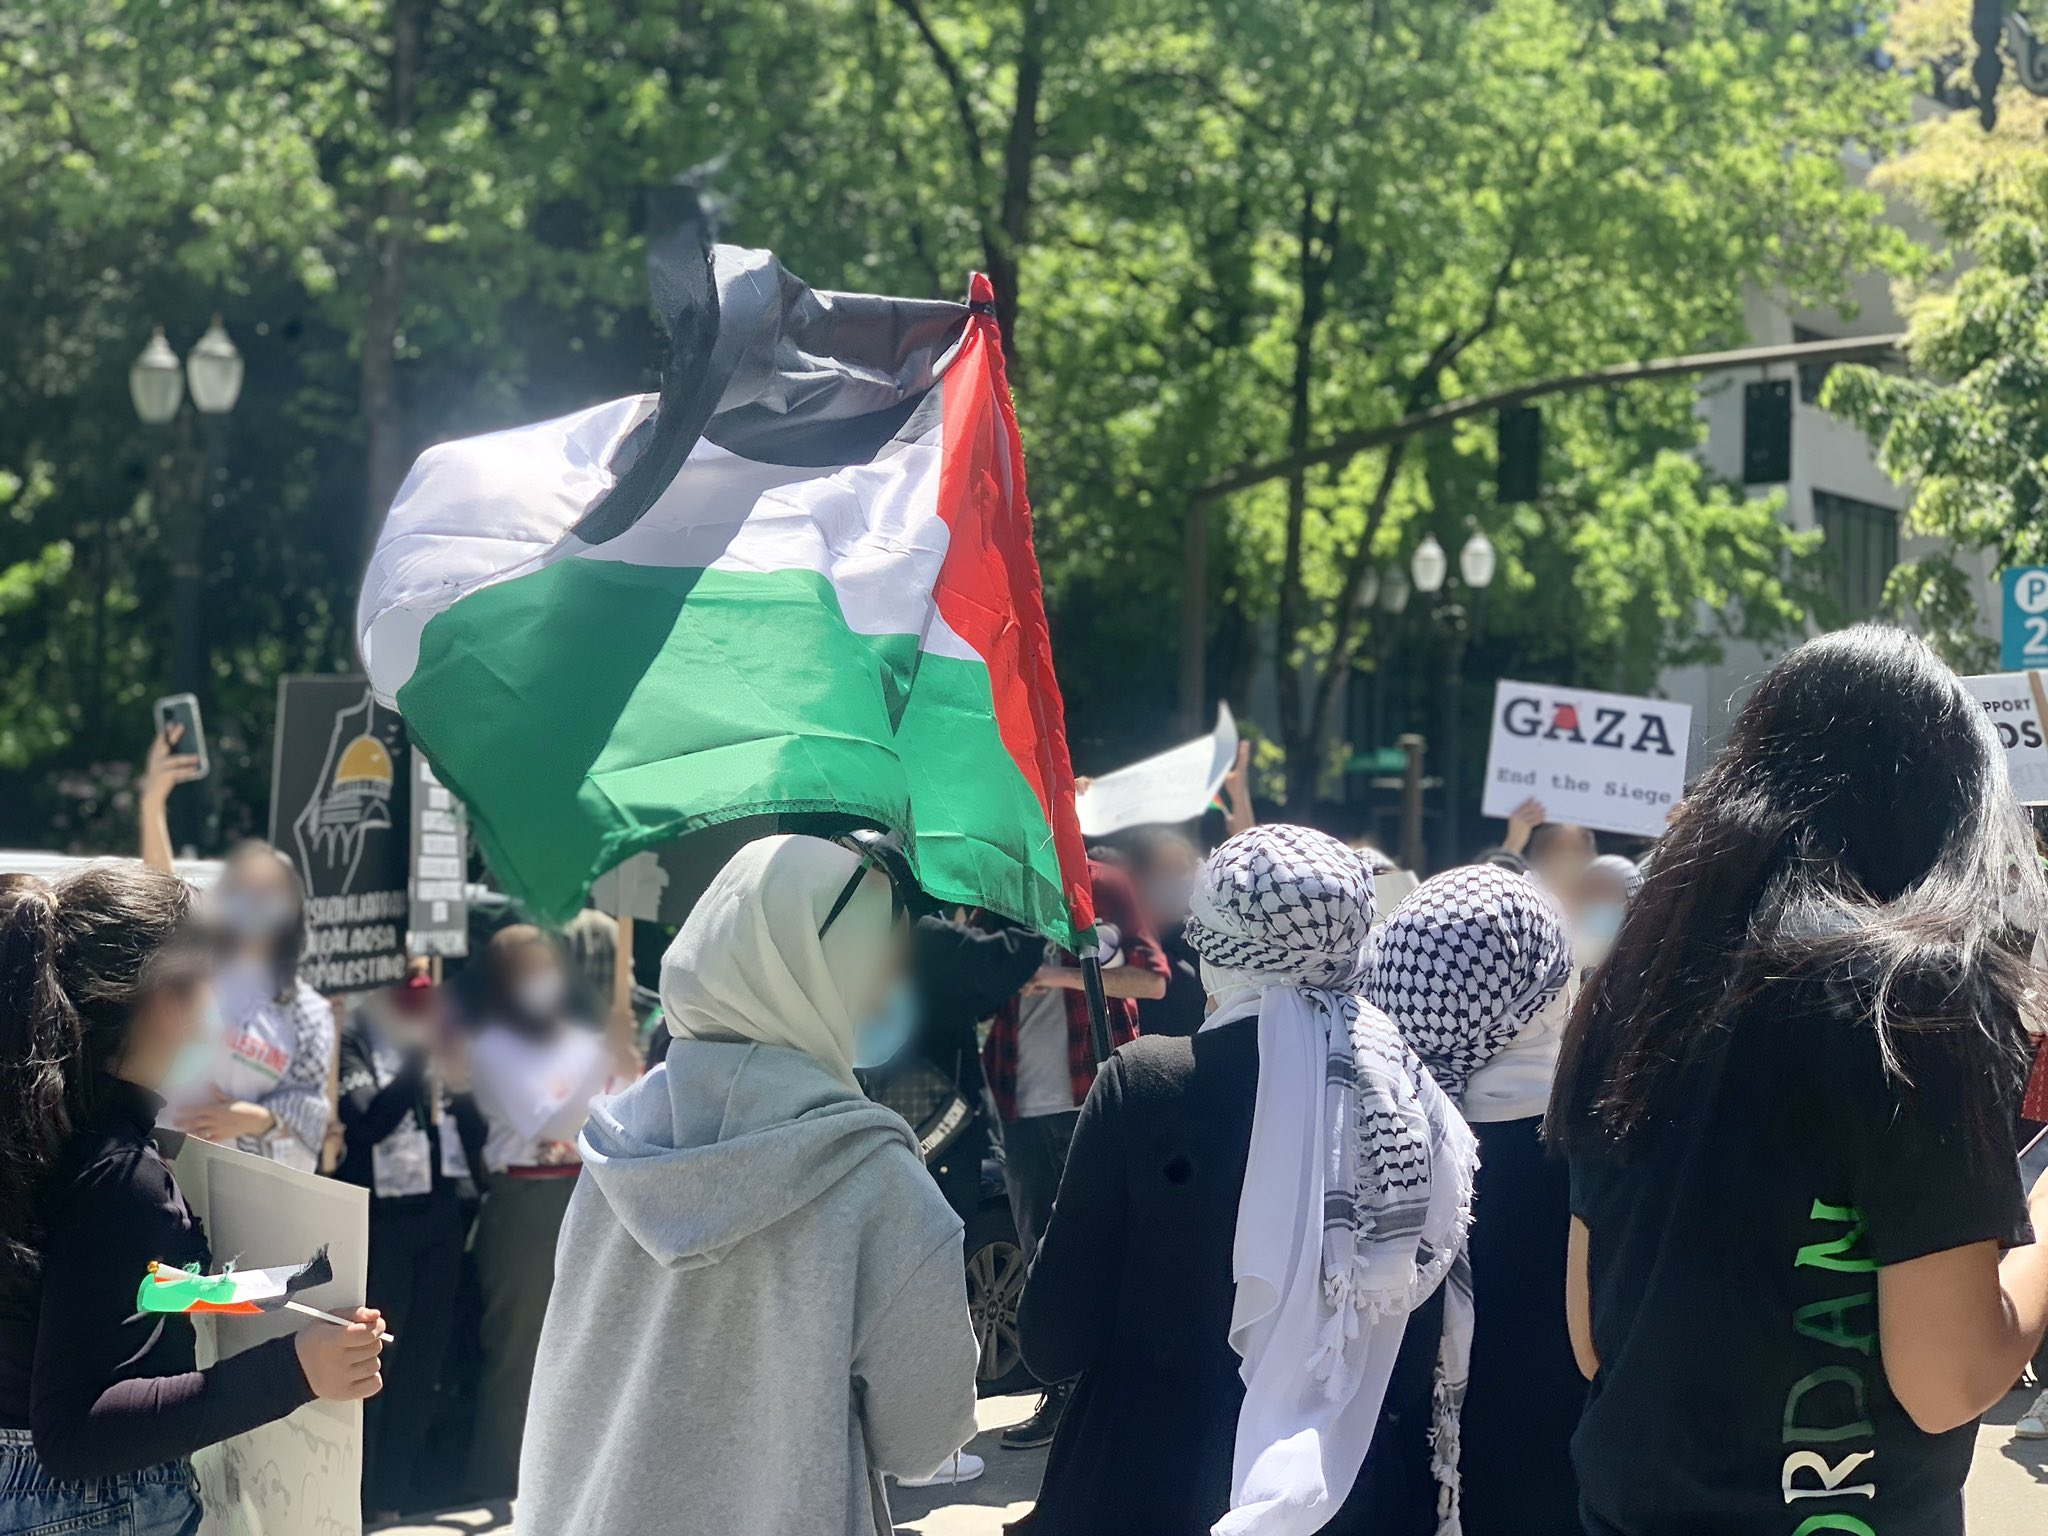 Hundreds in Portland Protest in Solidarity With Palestinian Struggle